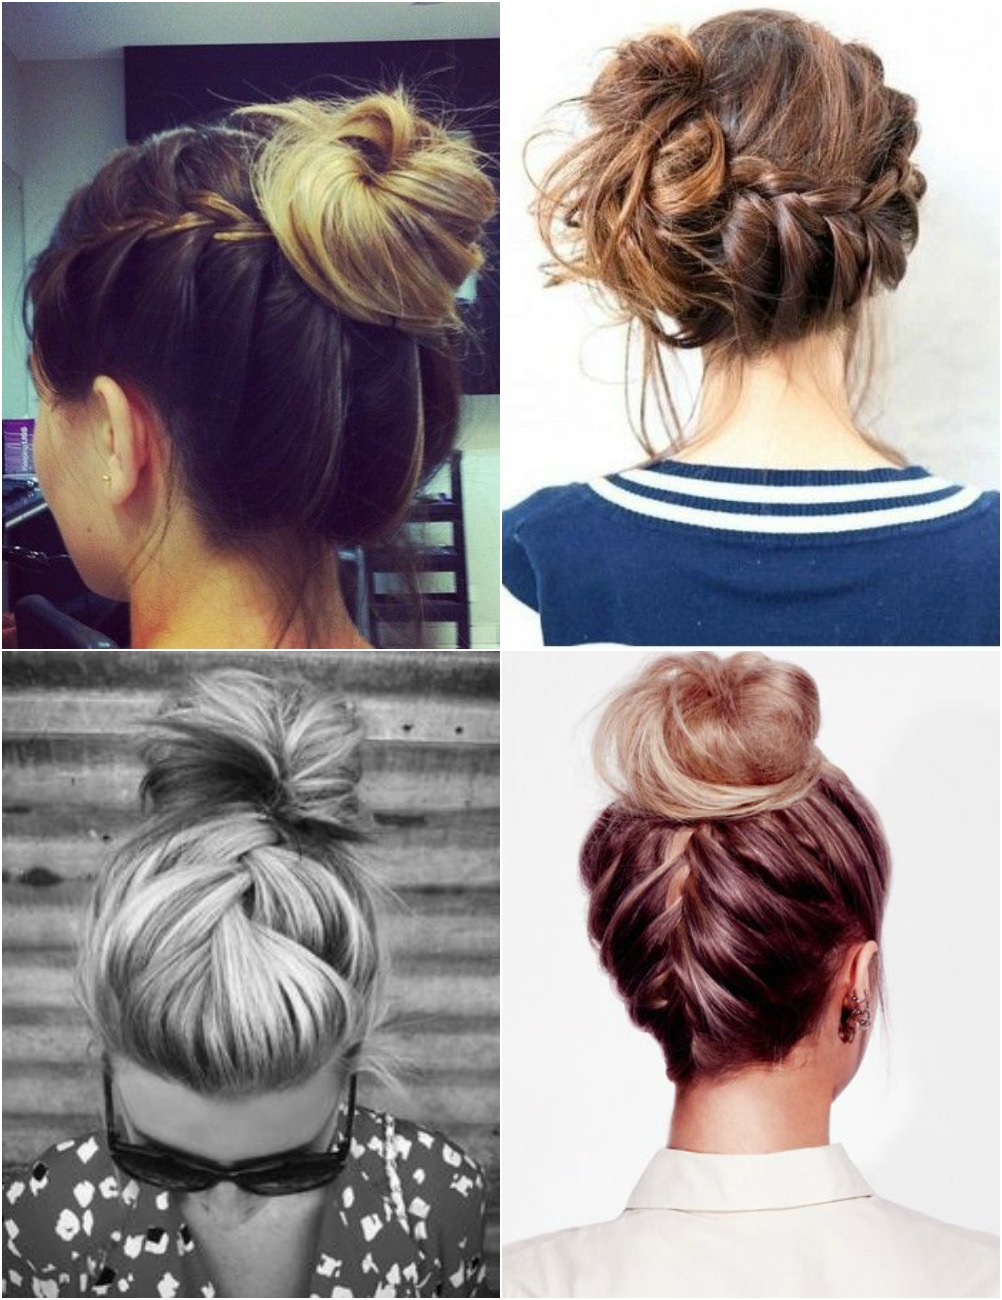 messy hair buns, top knot, french braid plait